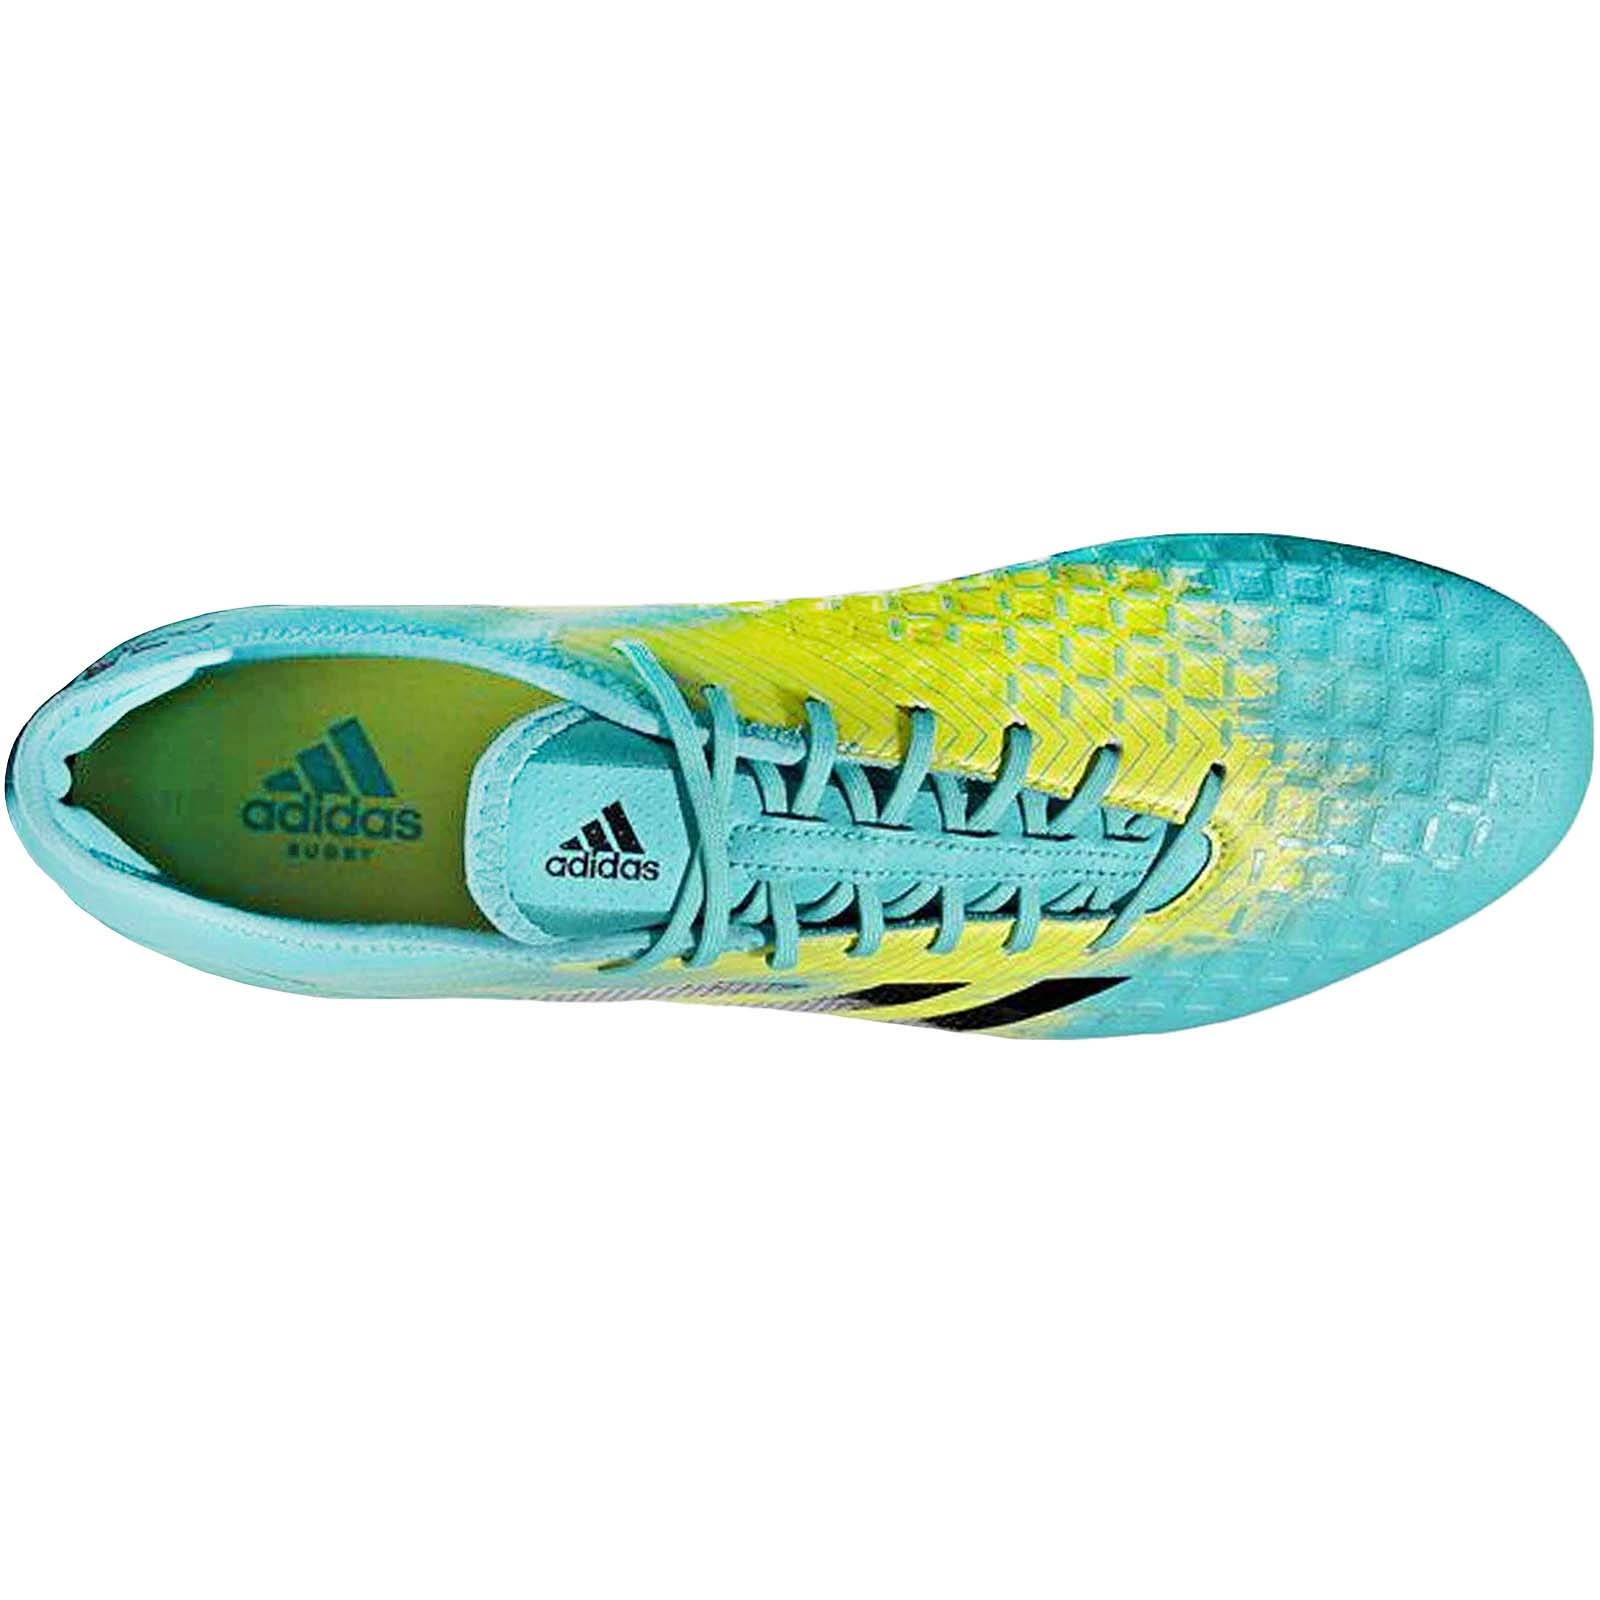 adidas-Performance-Mens-Predator-Malice-Control-Soft-Ground-Rugby-Boots thumbnail 7